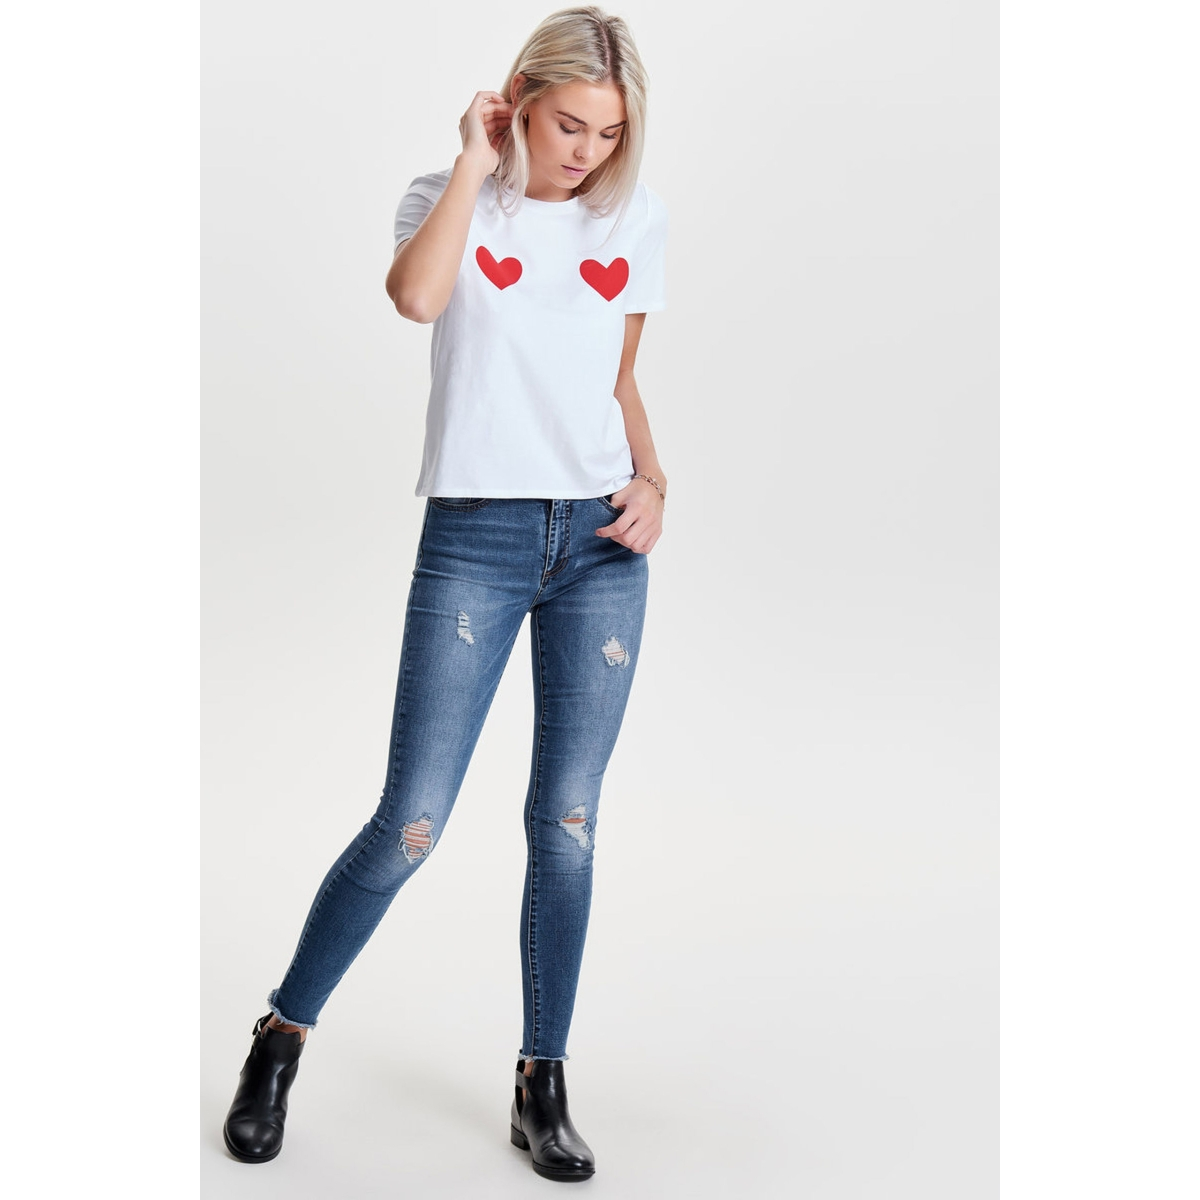 onlnany s/s t-shirt jrs 15157708 only t-shirt white/red hearts